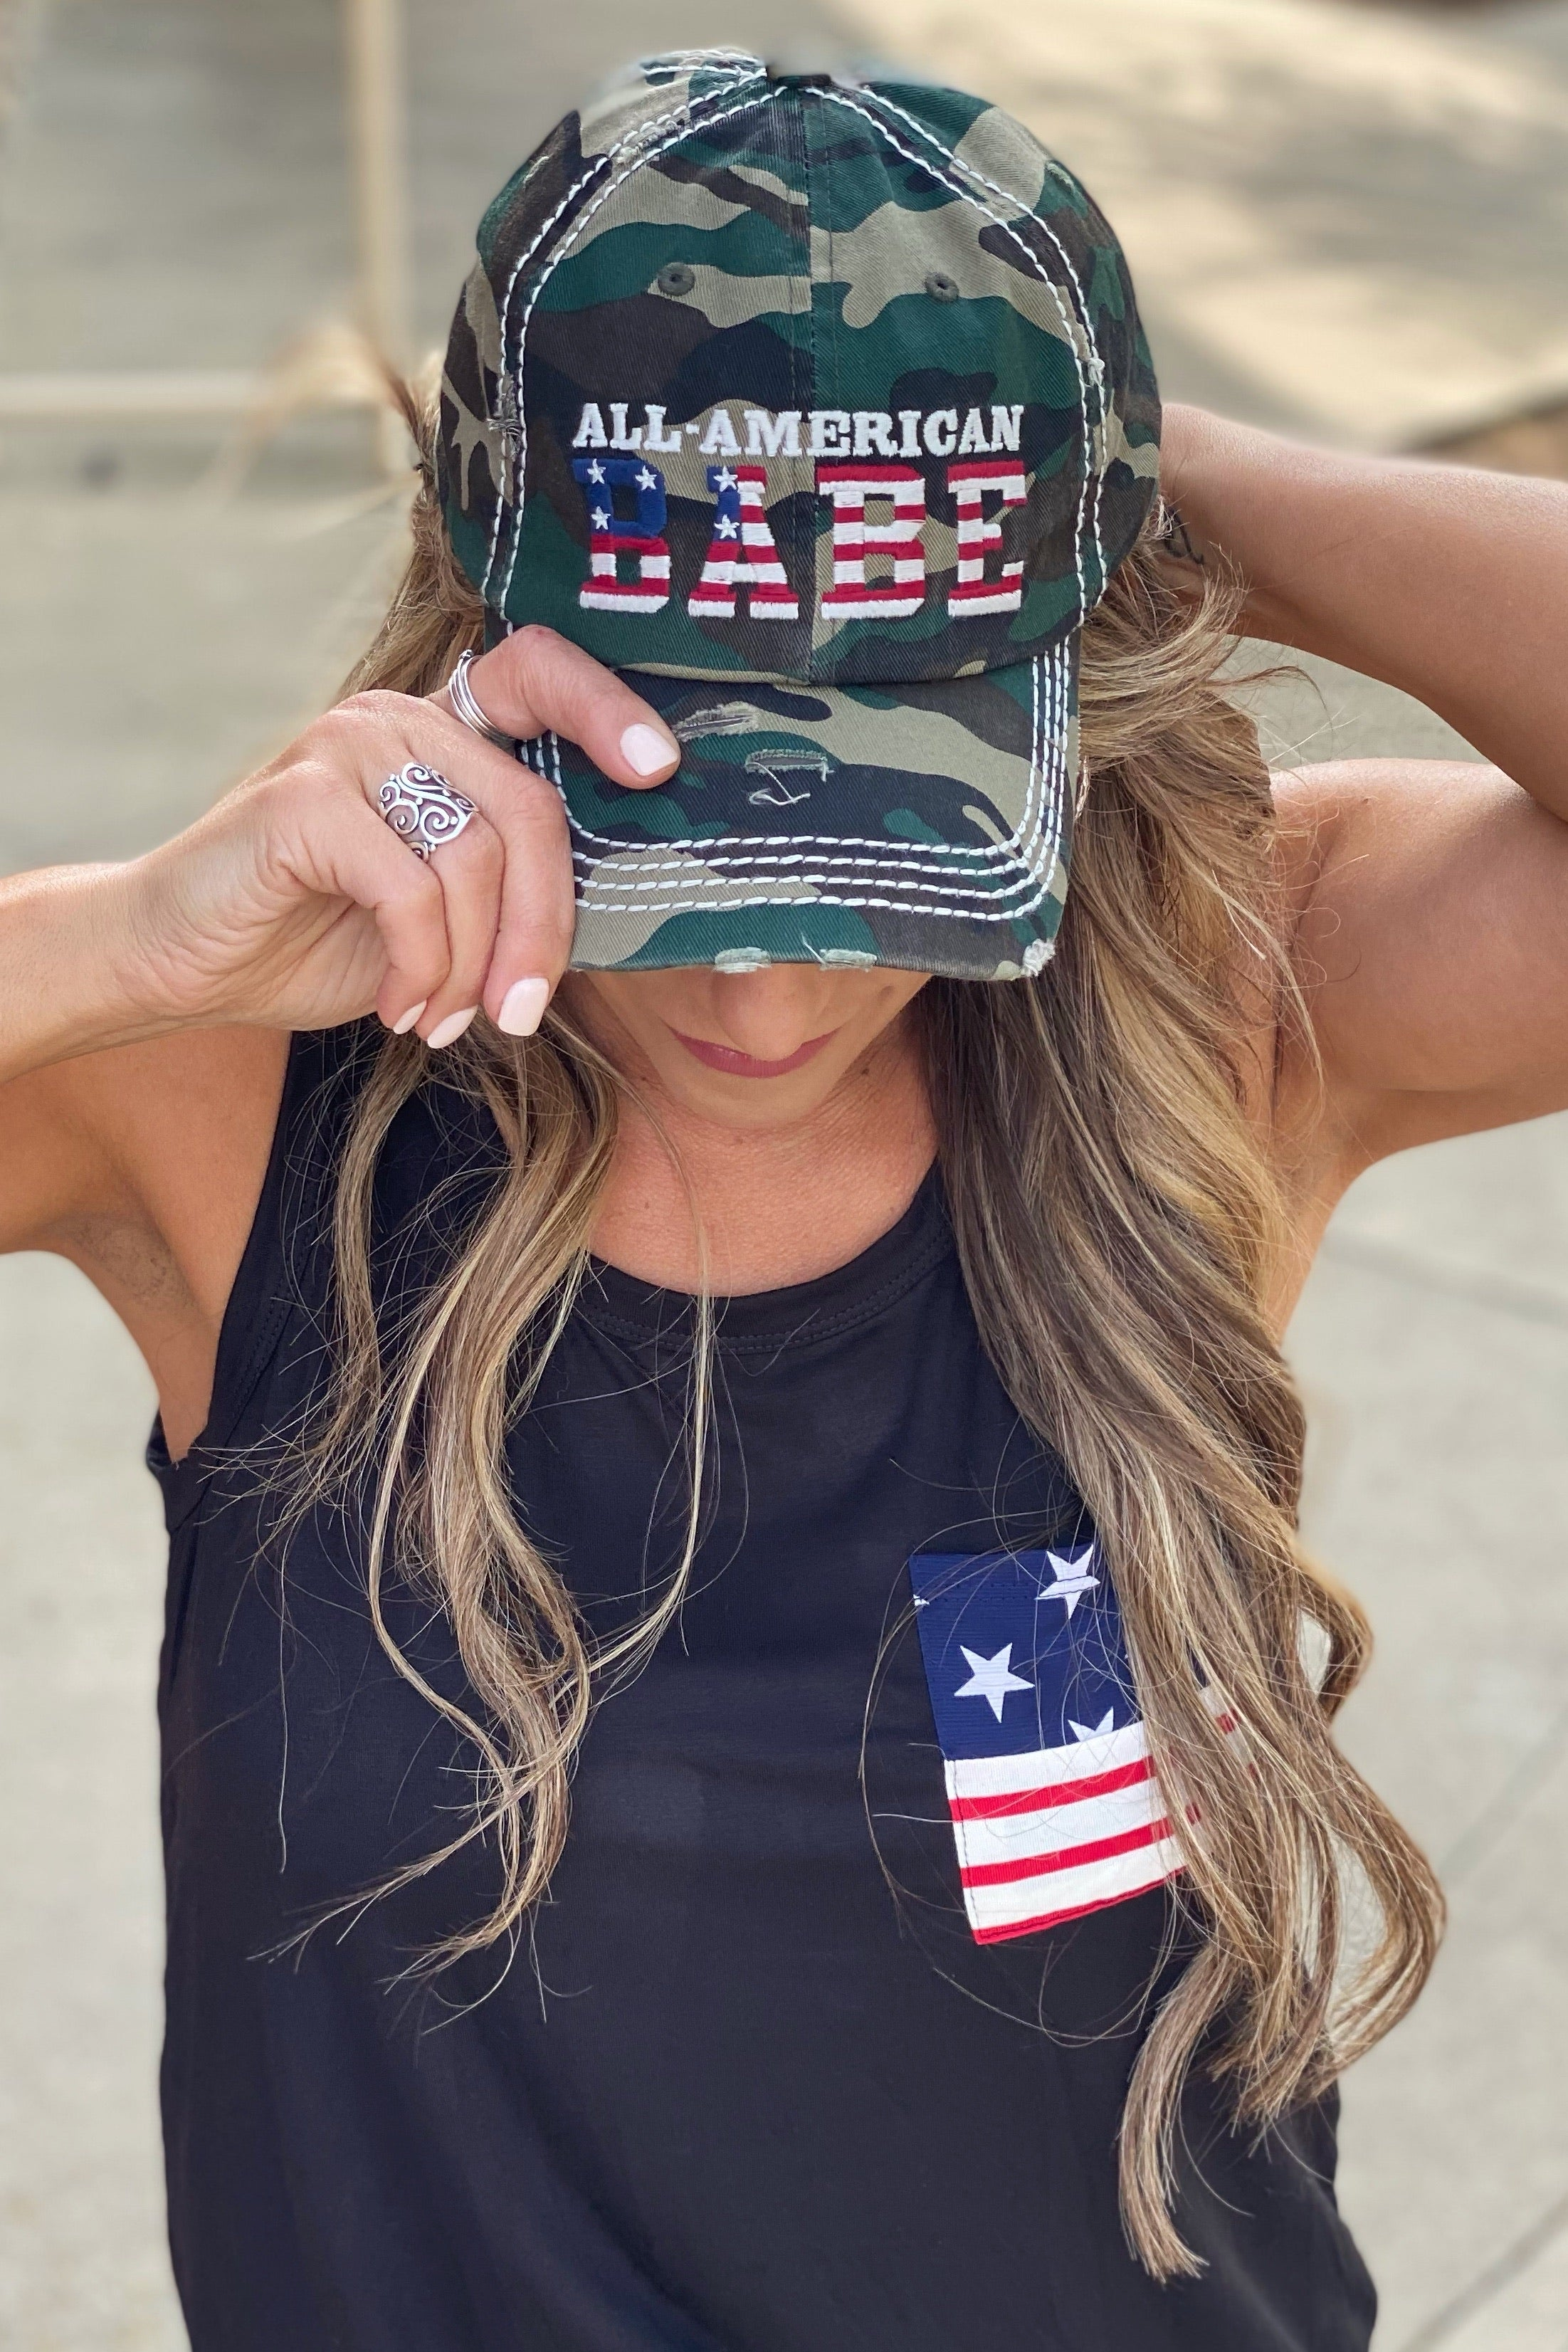 American Babe Distressed Camo Trucker Cap with Adjustable Back, USA Flag Detail on back